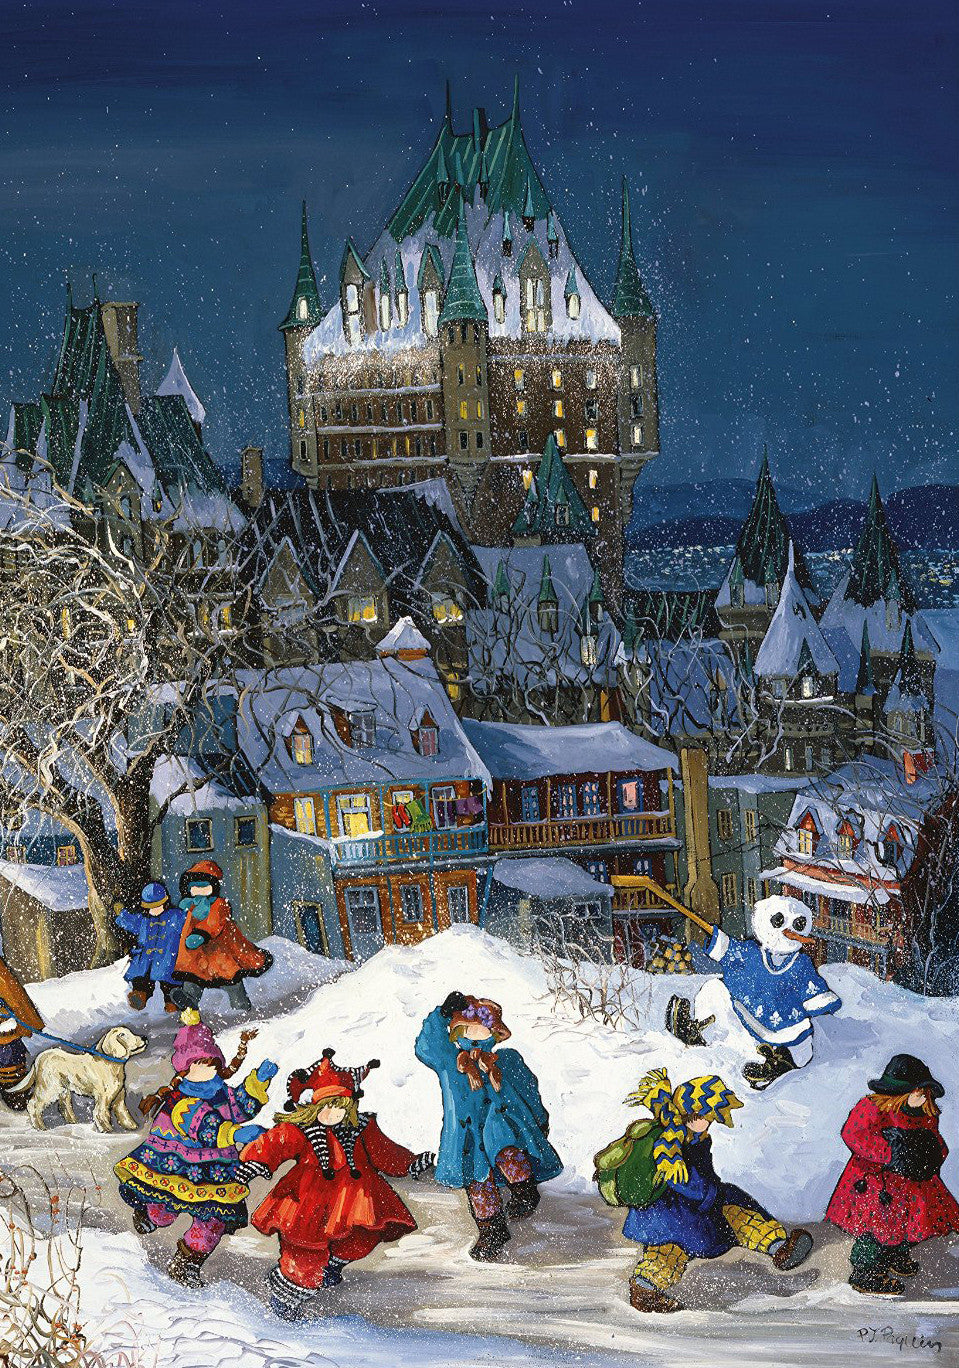 1000 PC PZ PAQUIN: CHATEAU FRONTENAC, QC  Pauline Paquin is a mother of three residing in Sainte-Adele, Quebec, where she has relentlessly been pursuing her true passion found in 1979. As a figurative artist with an acute sense of observation, a flair for details, and a vivid color palette, Pauline through her canvases brings to life the magical moments of childhood. With each stroke of the brush she conveys her sensitivity with a touch of memories, of motherhood, of nostalgia and of reality. Each canvas de